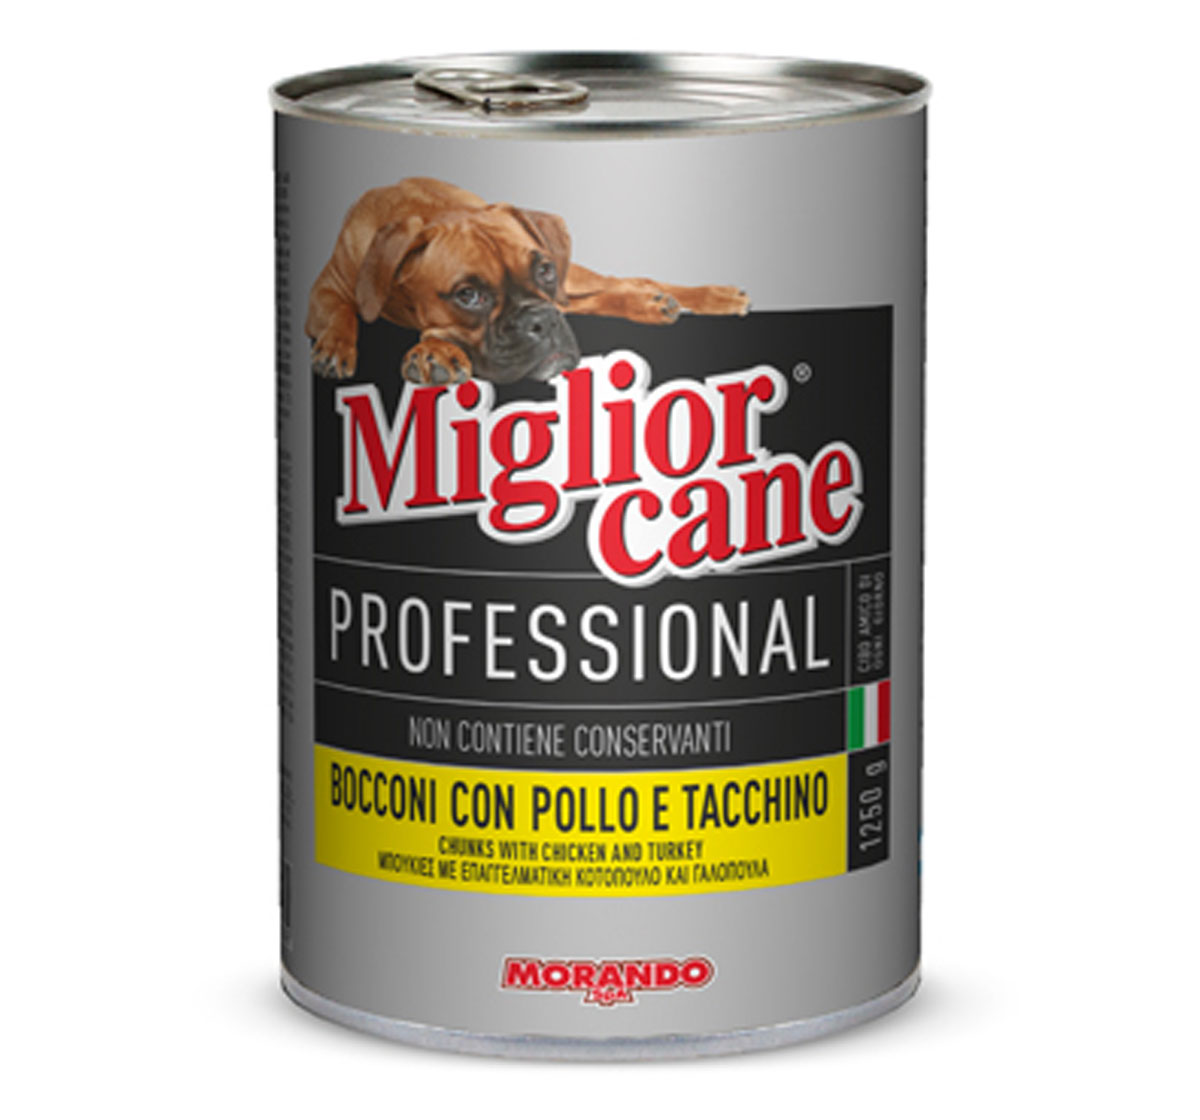 Miglior Cane Professional Chicken Amp Turkey Chunks Can Food